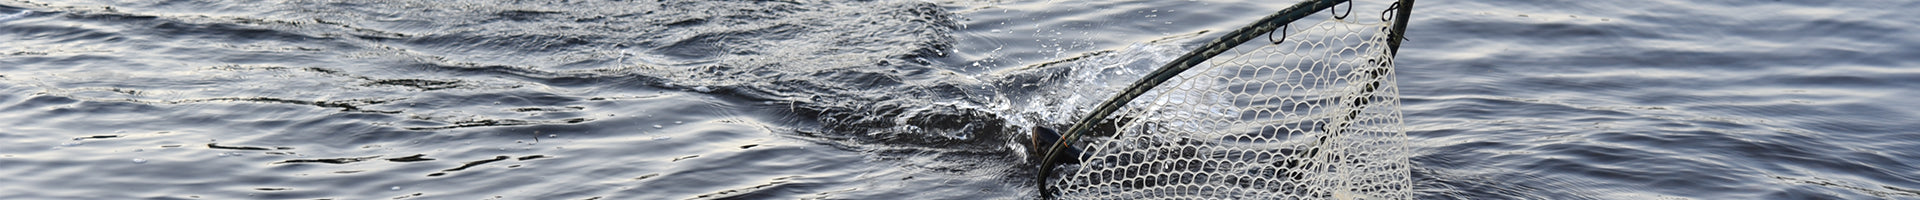 Guided Fly Fishing Page Banner